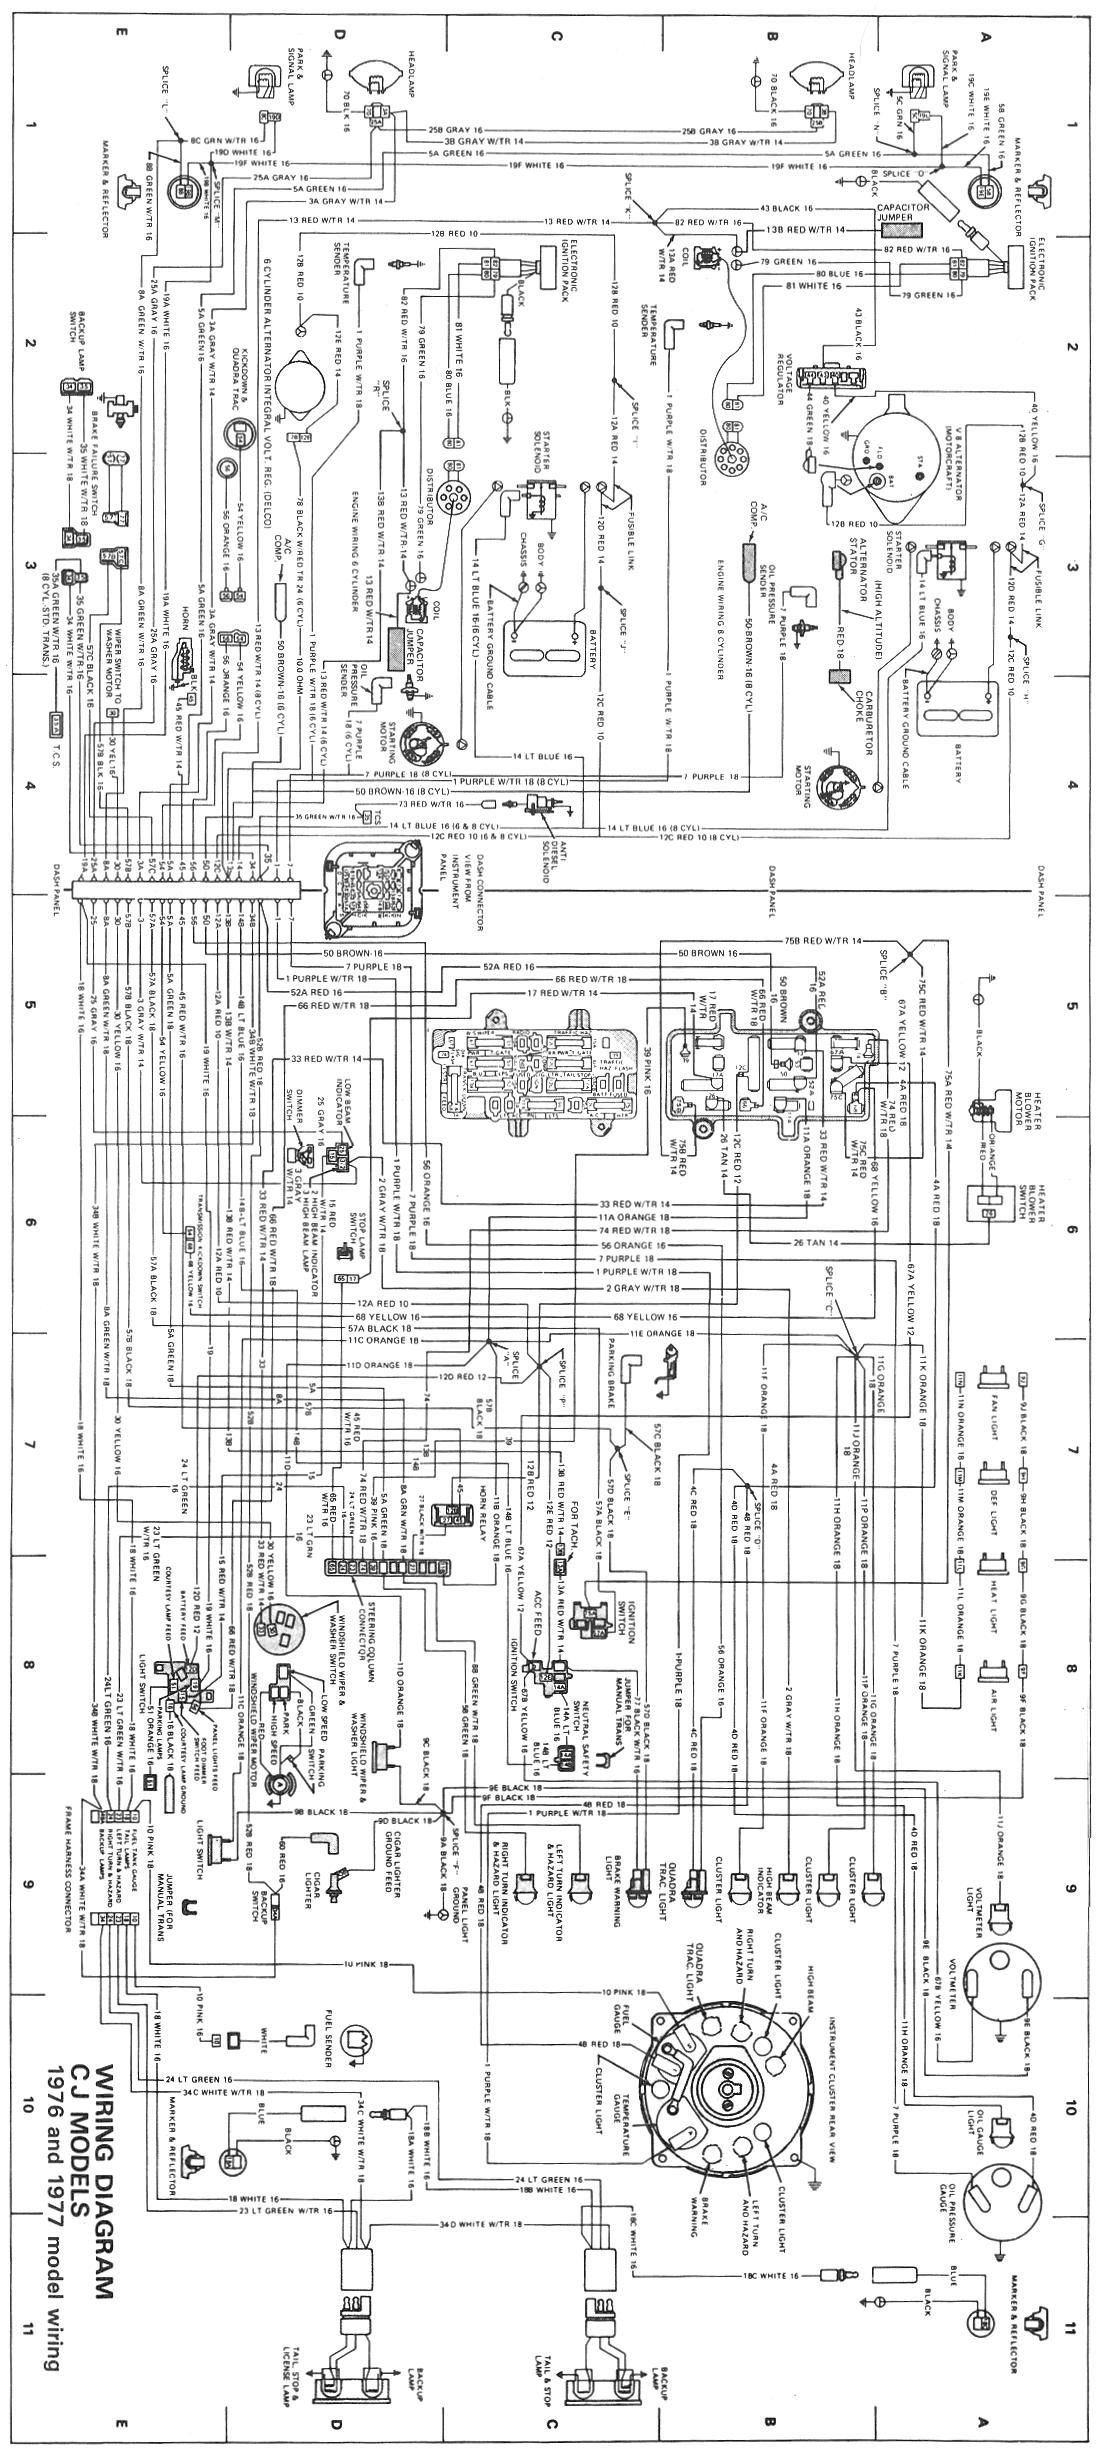 A Pool Pump Motor Wiring Diagram